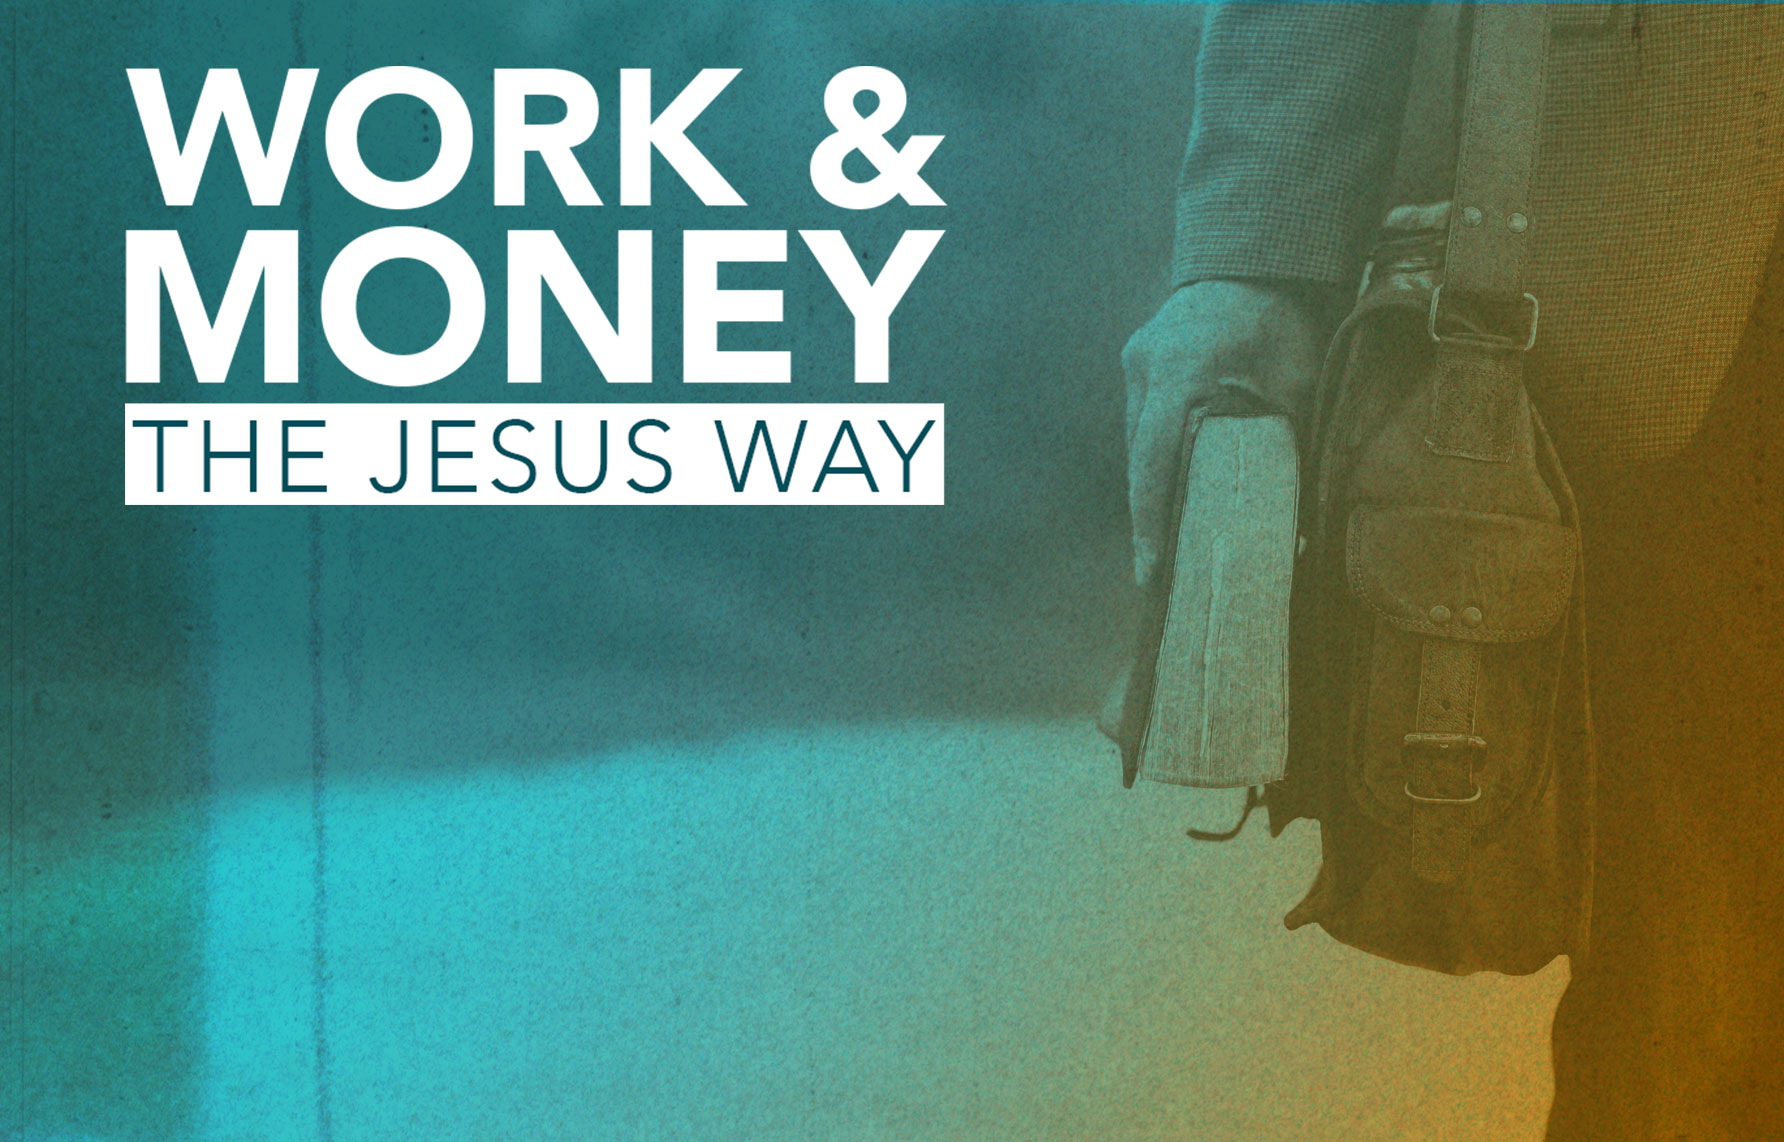 Work & Money banner